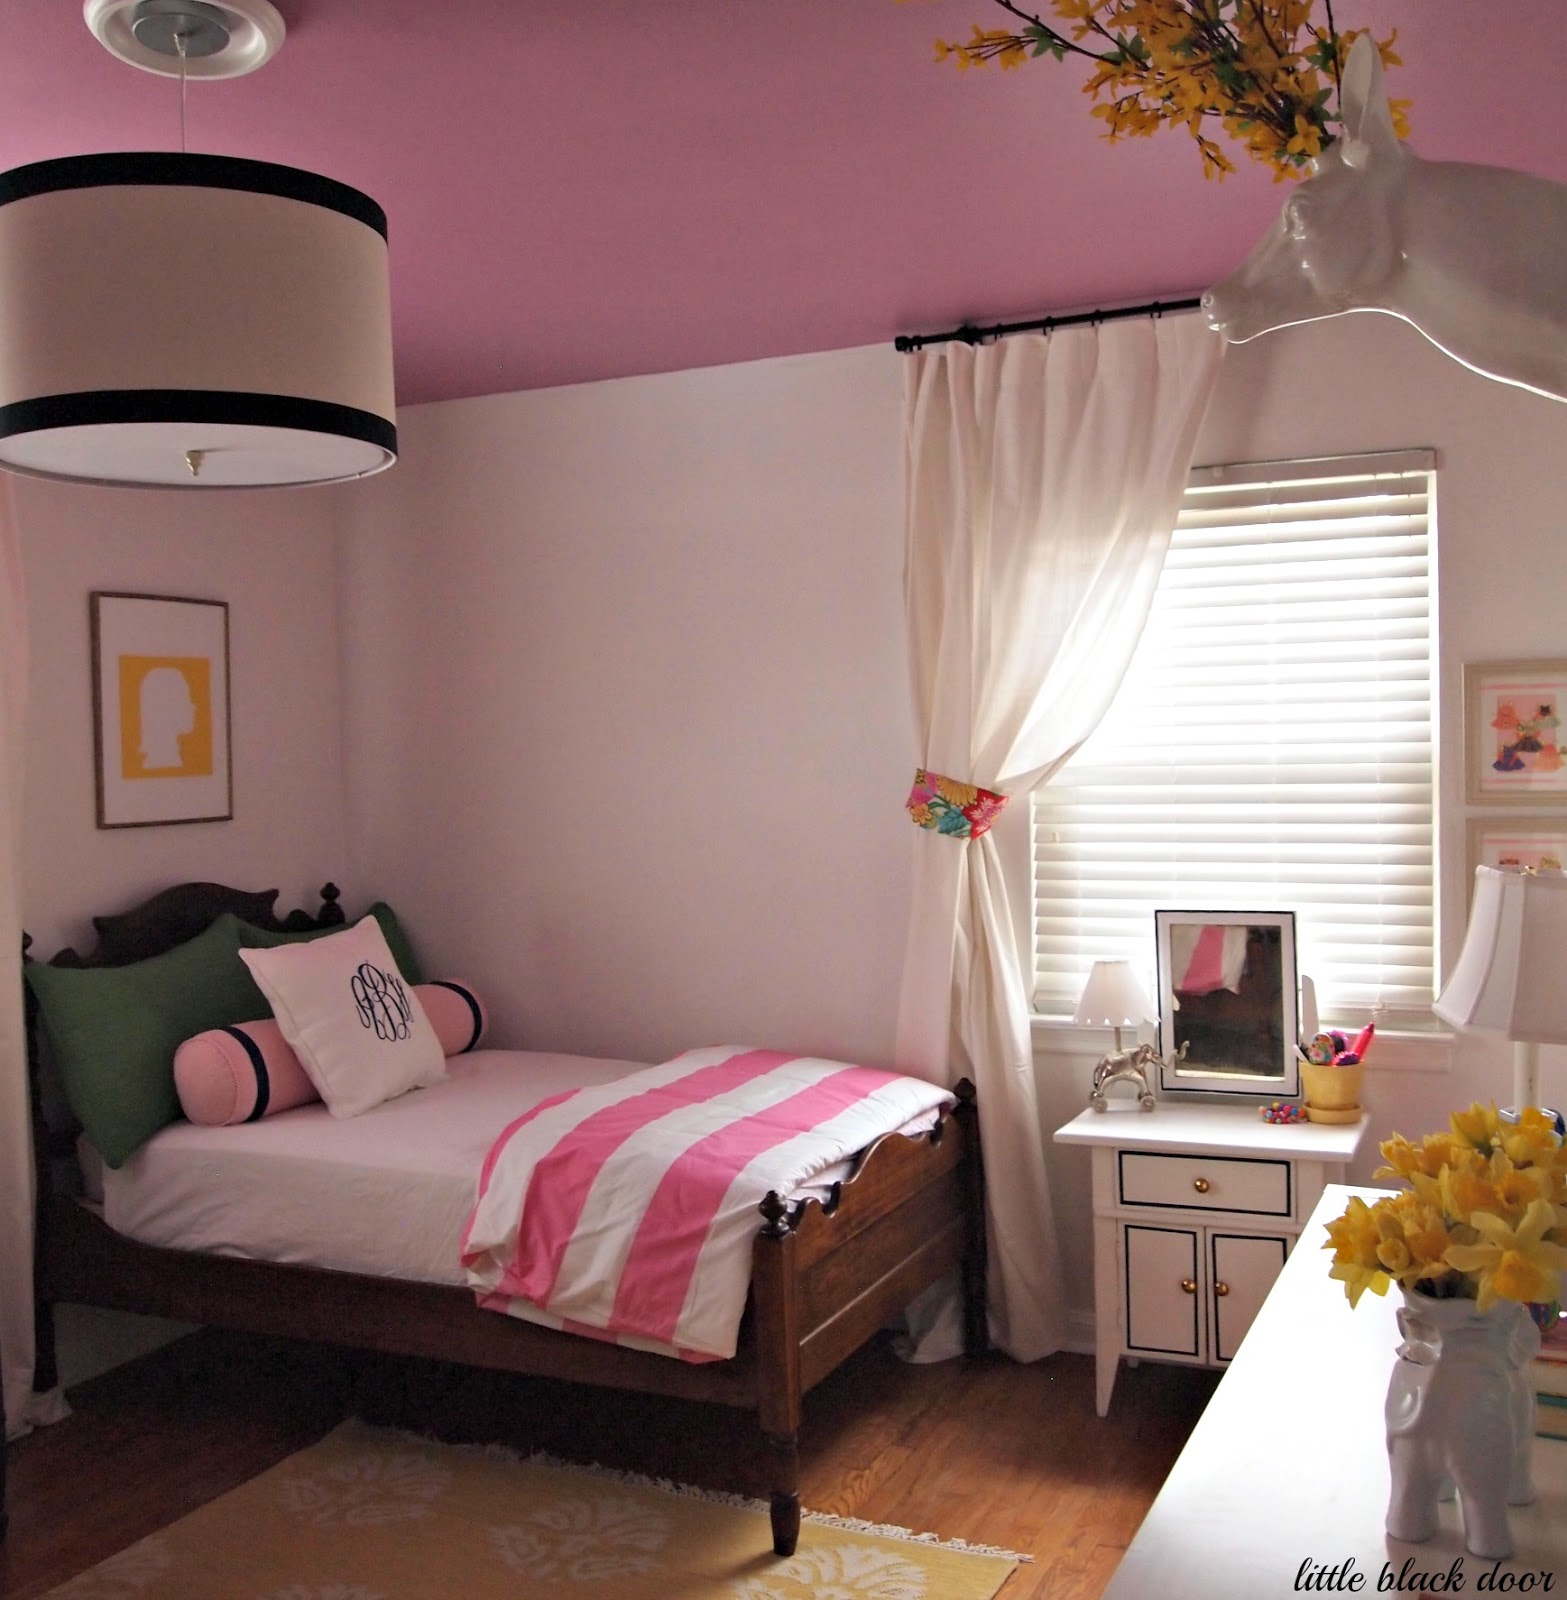 Sadie stella favorite room feature little black door - Little girls bedrooms ...